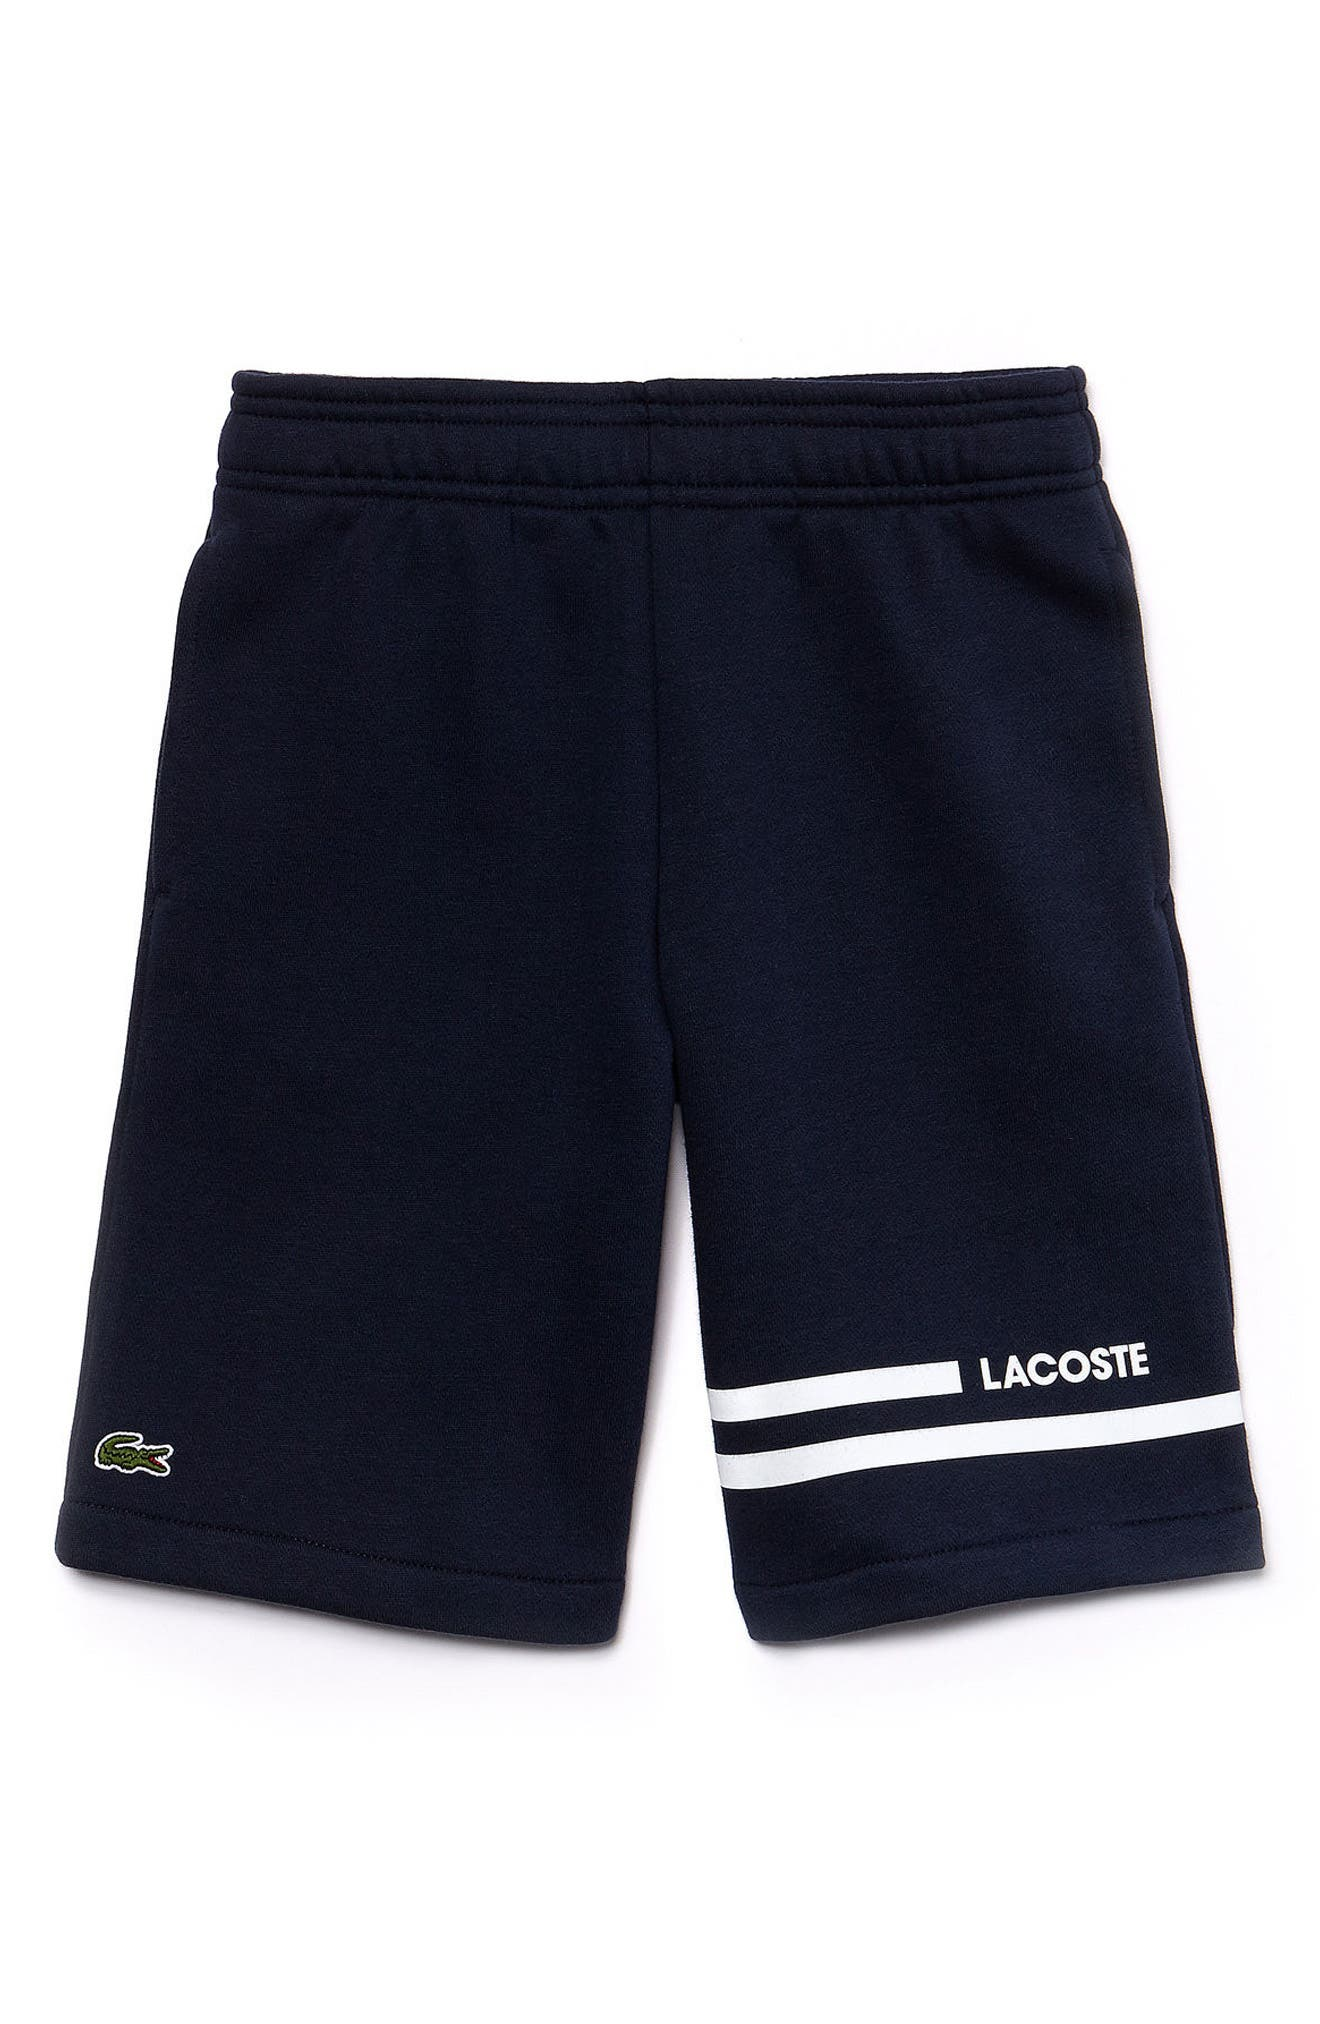 Lacoste Sport Knit Shorts (Toddler Boys & Little Boys)